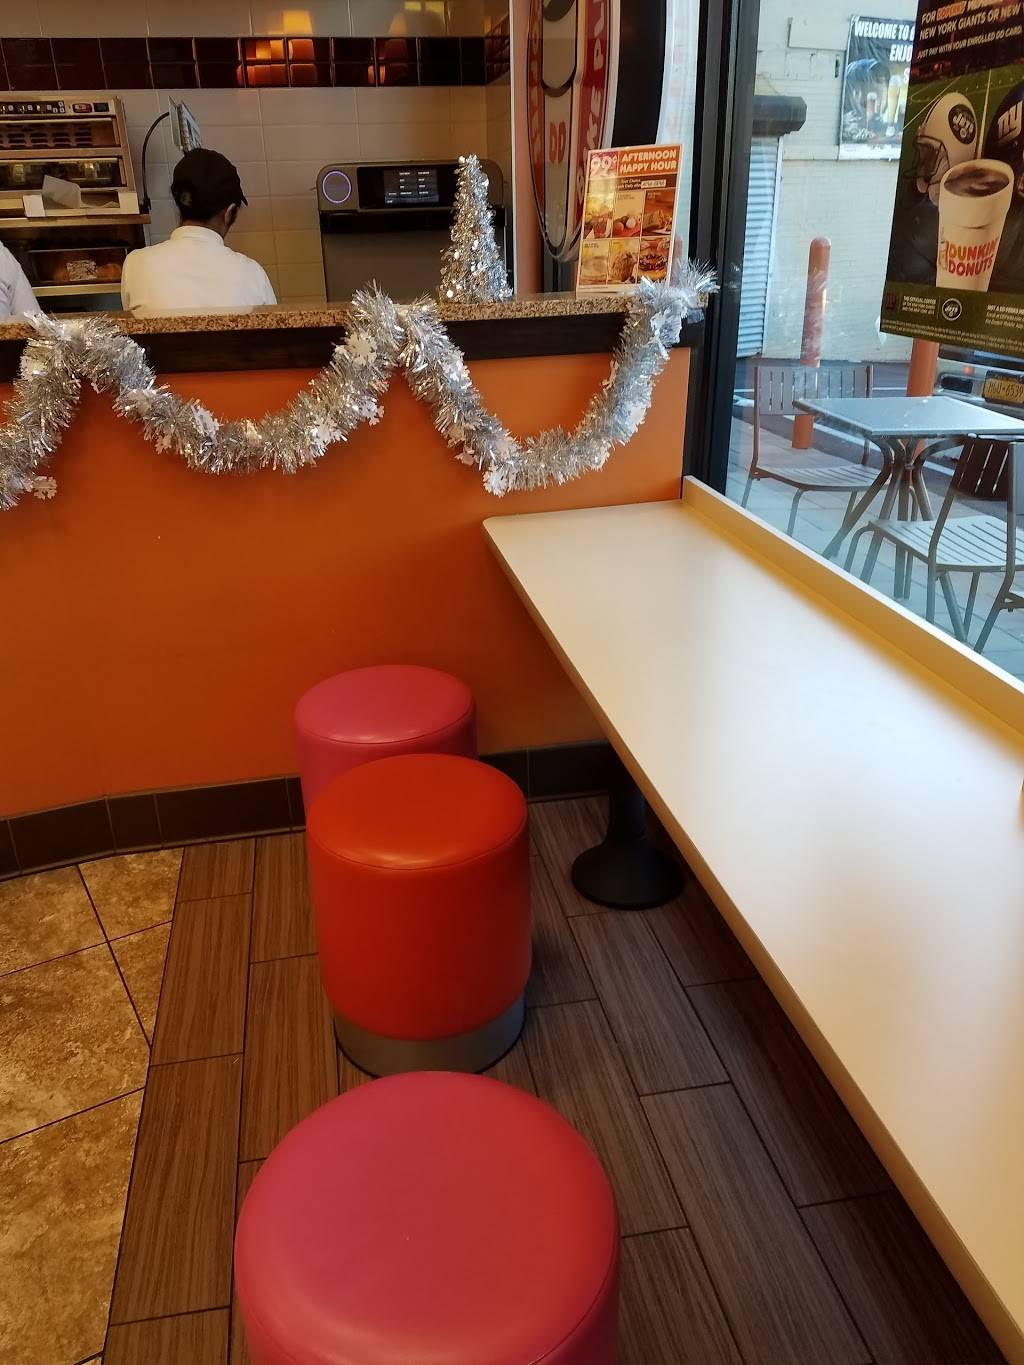 Dunkin Donuts | cafe | 166-01 Northern Blvd, Flushing, NY 11358, USA | 9175635257 OR +1 917-563-5257